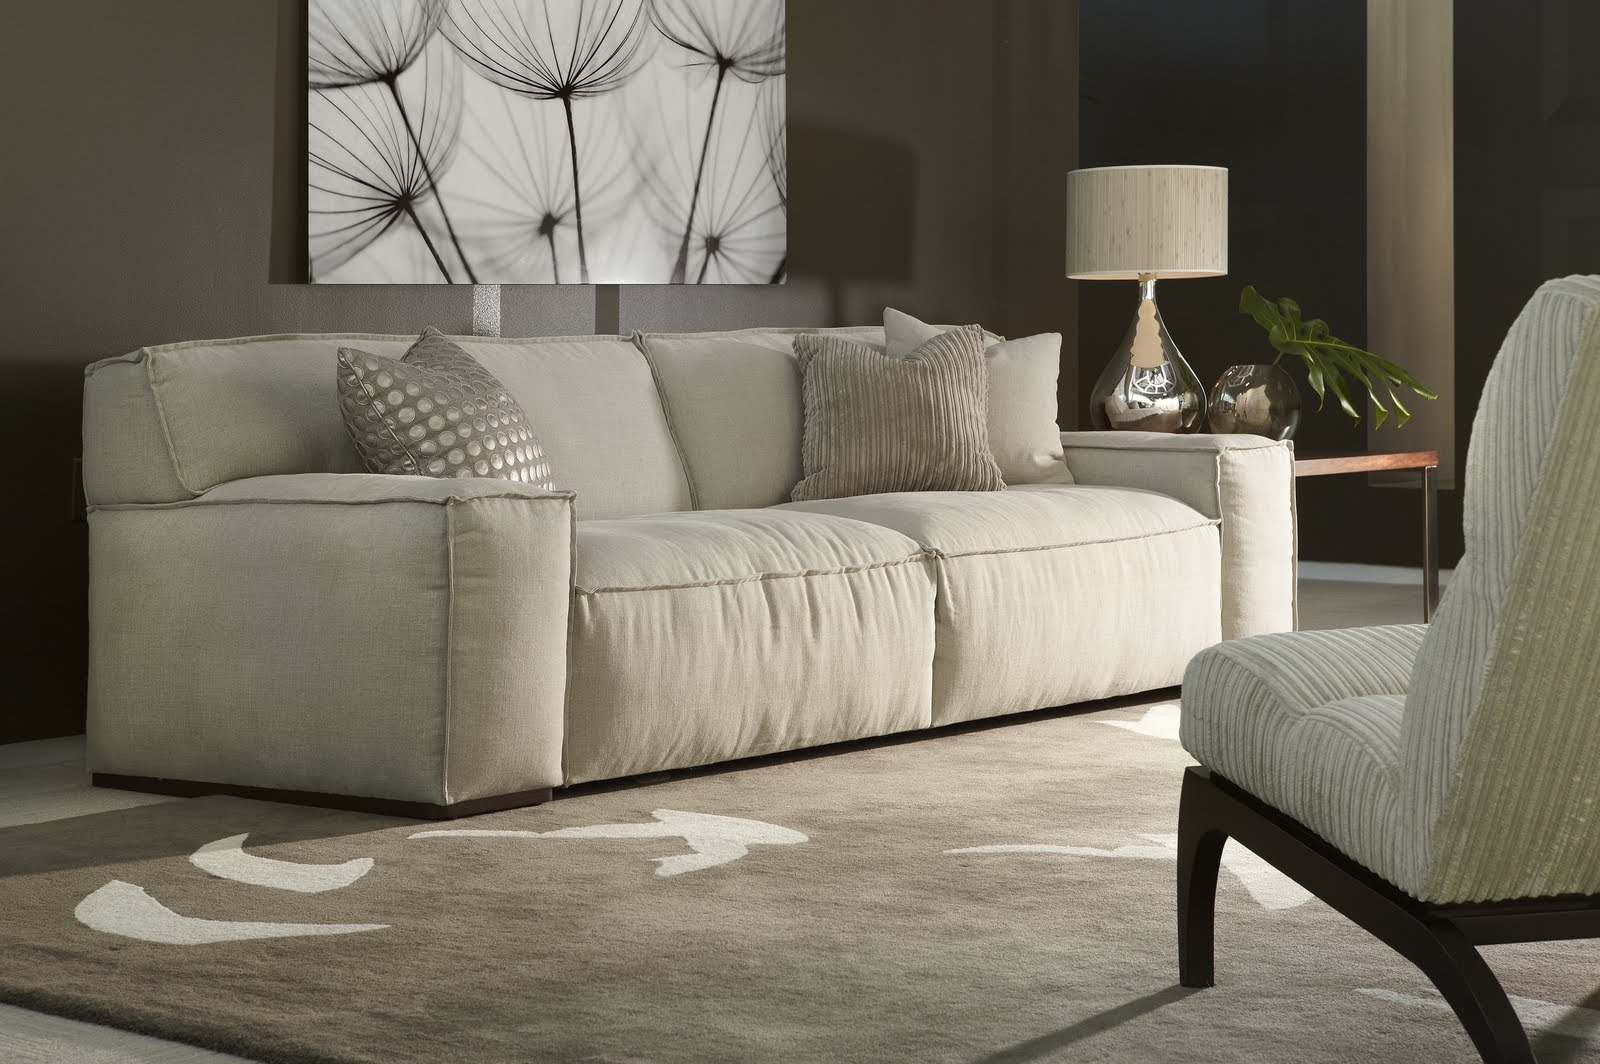 Sectional Sofa Design: Down Sectional Sofa Blend Wrapped Goose Throughout Down Feather Sectional Sofas (View 3 of 10)